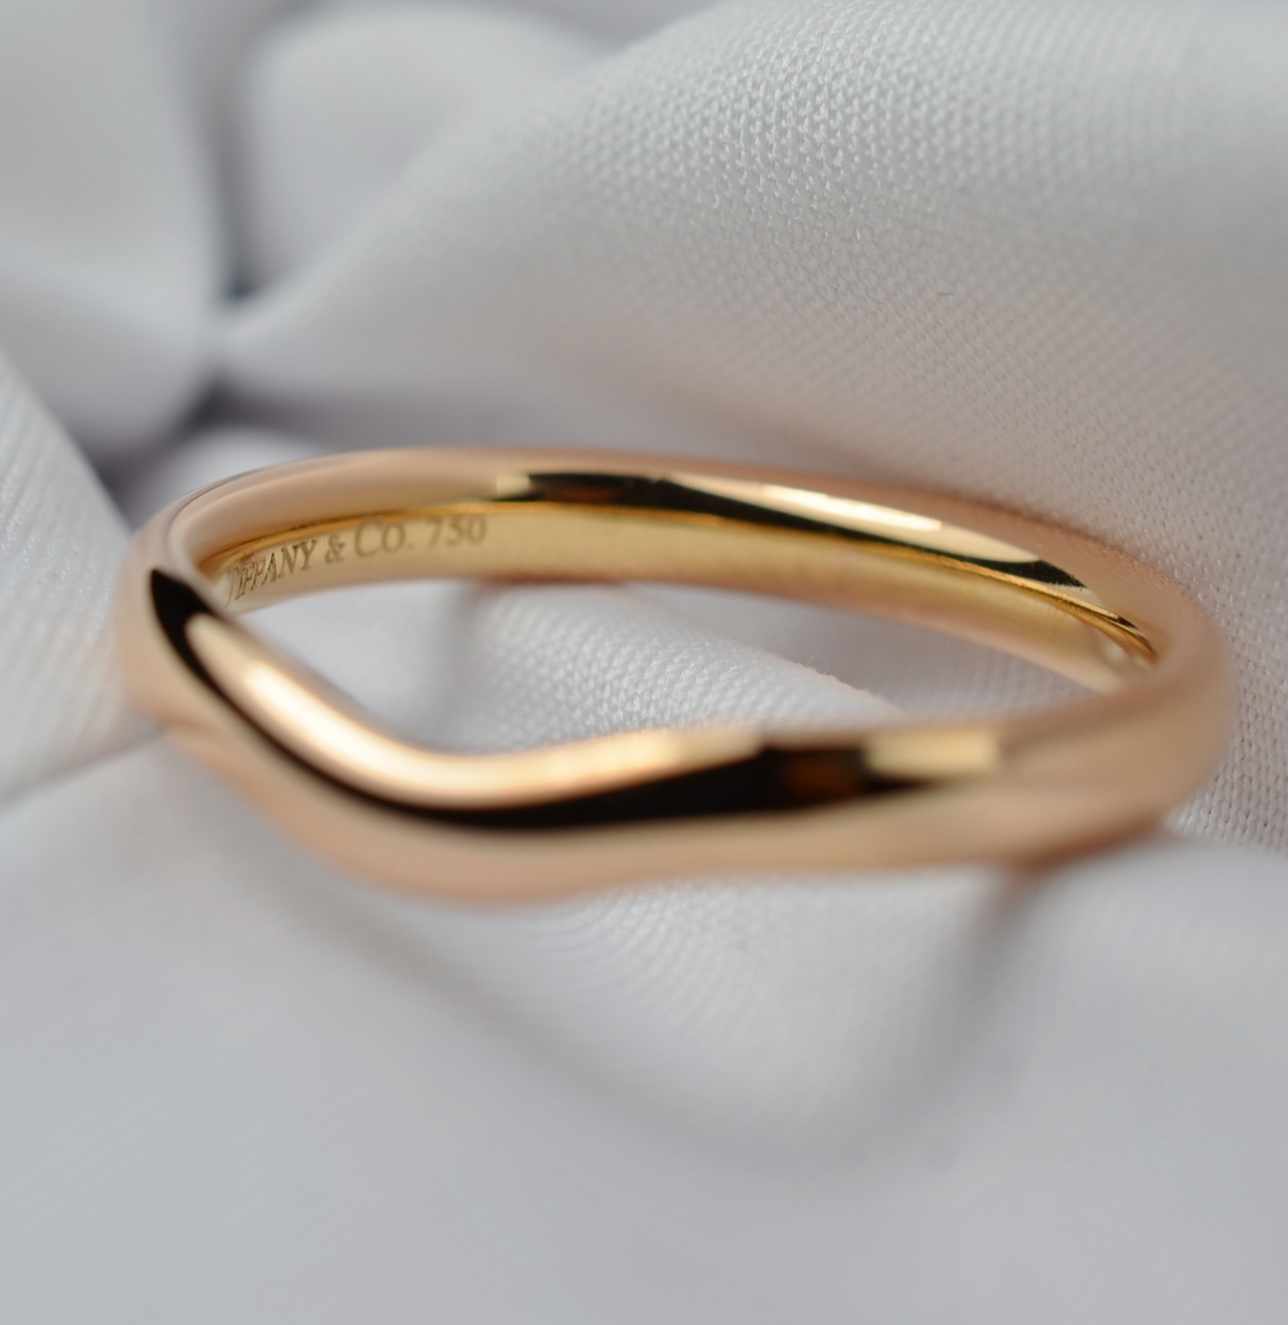 wedding band curved Elsa Peretti 18K Rose Gold Curved Wedding Band Property Room